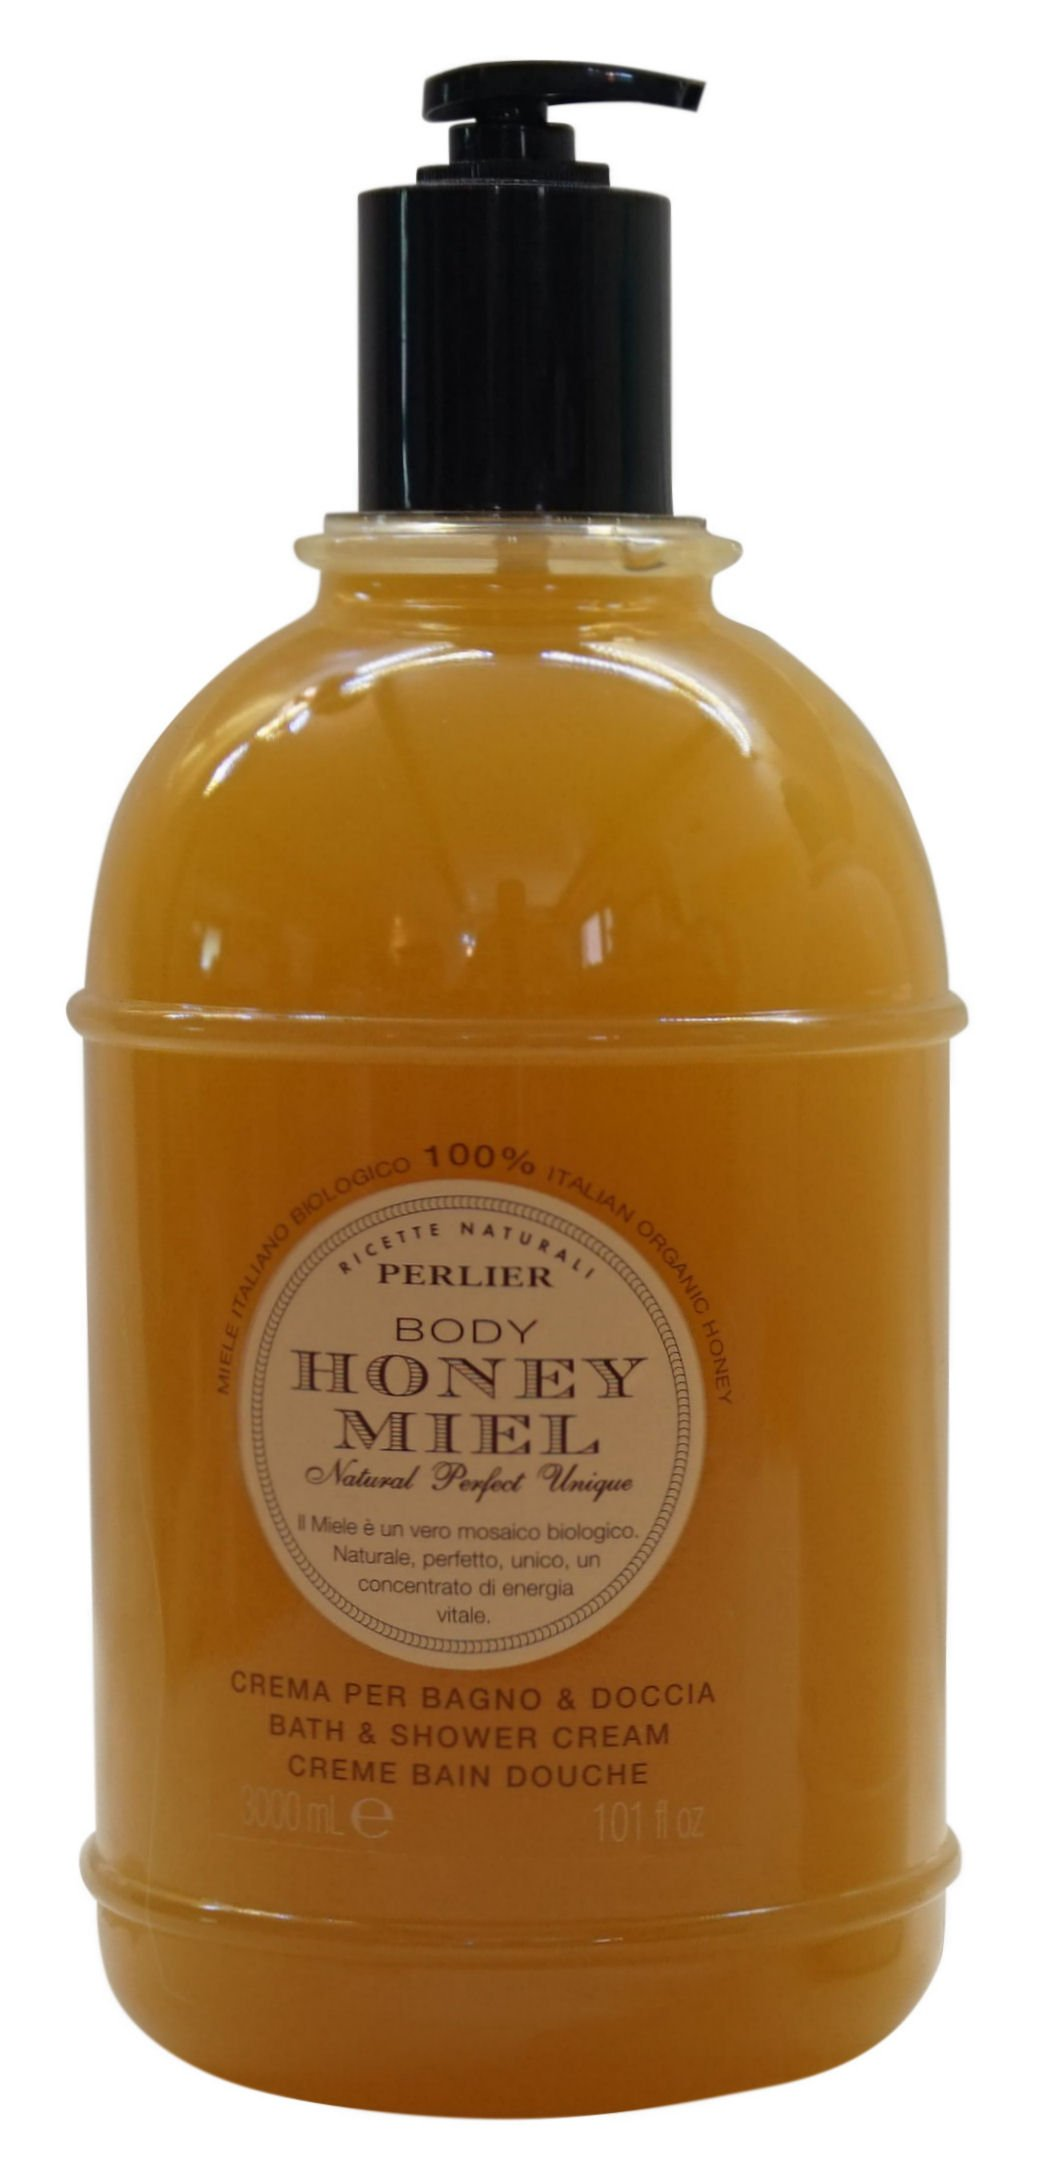 Perlier Honey Bath & Shower Cream (101 oz.)